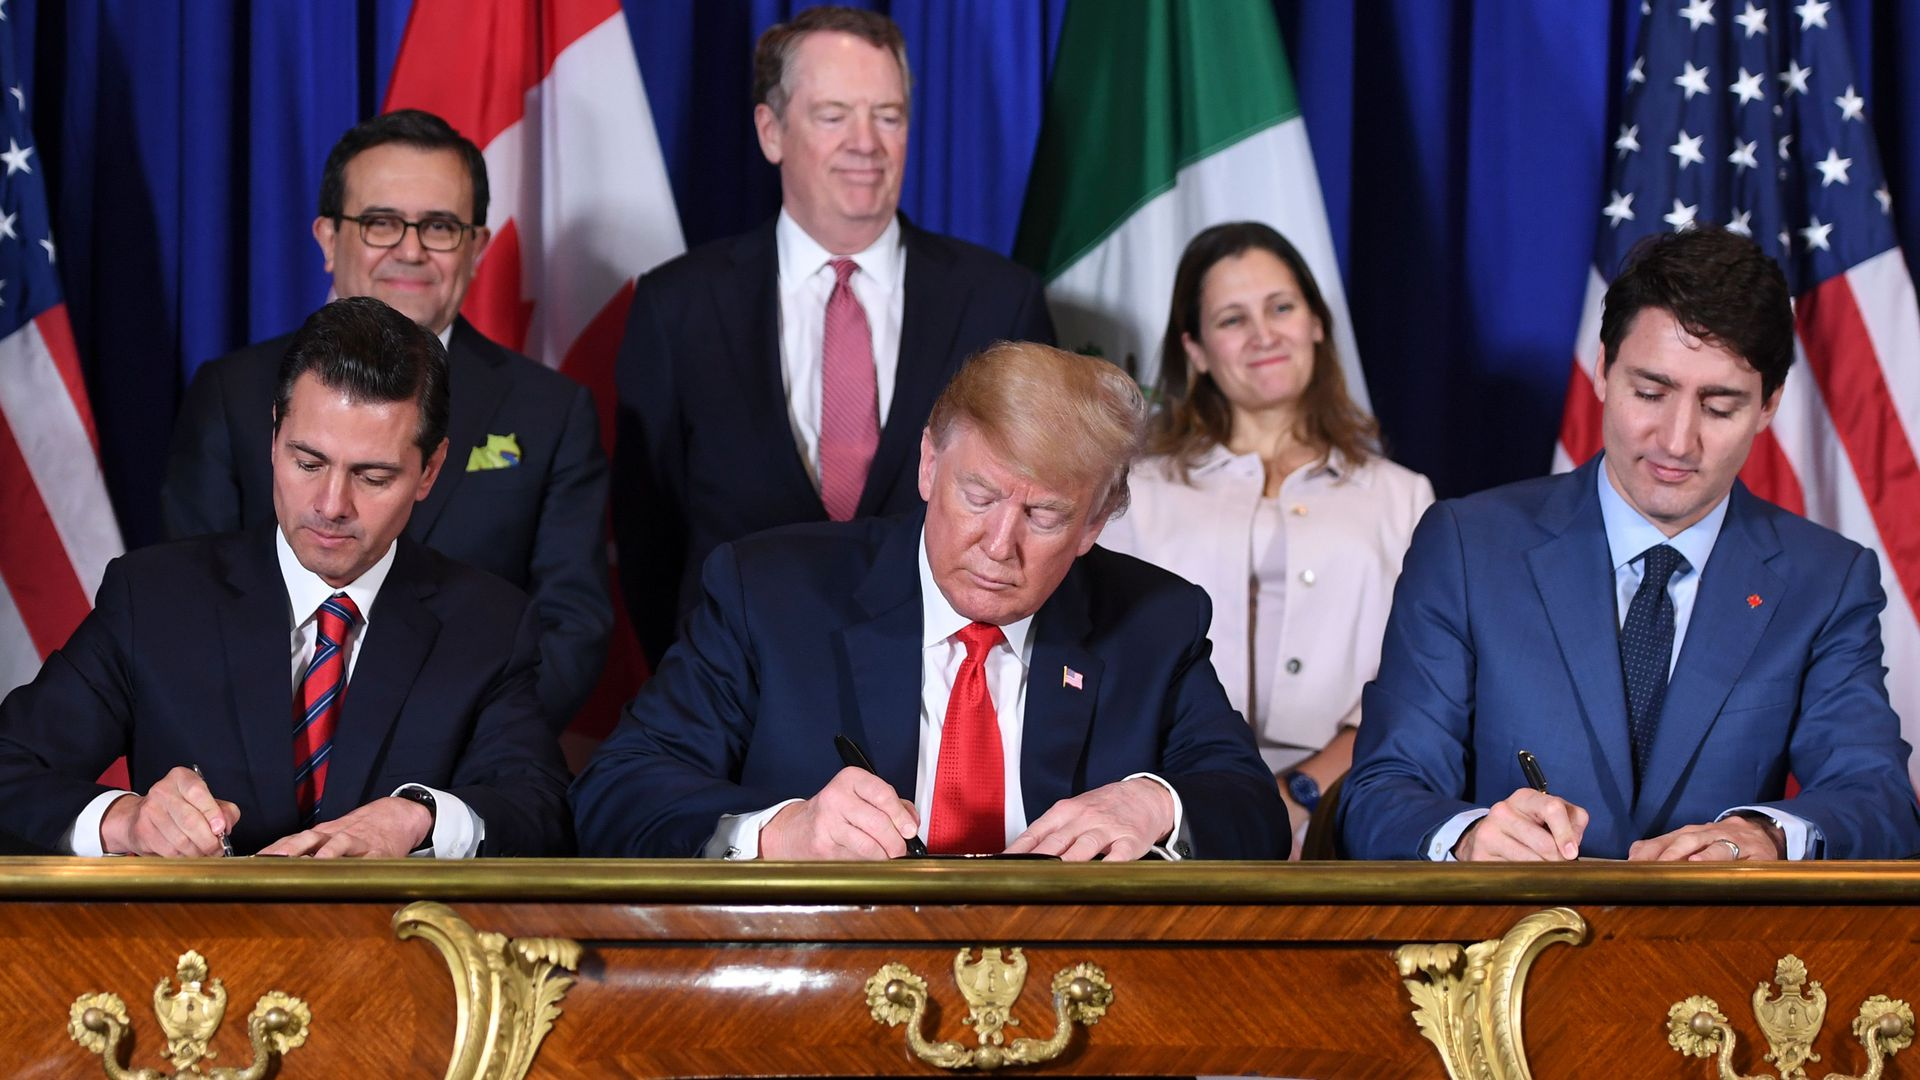 Mexico's President Enrique Pena Nieto US President Donald Trump and Canadian Prime Minister Justin Trudeau signing a trade deal